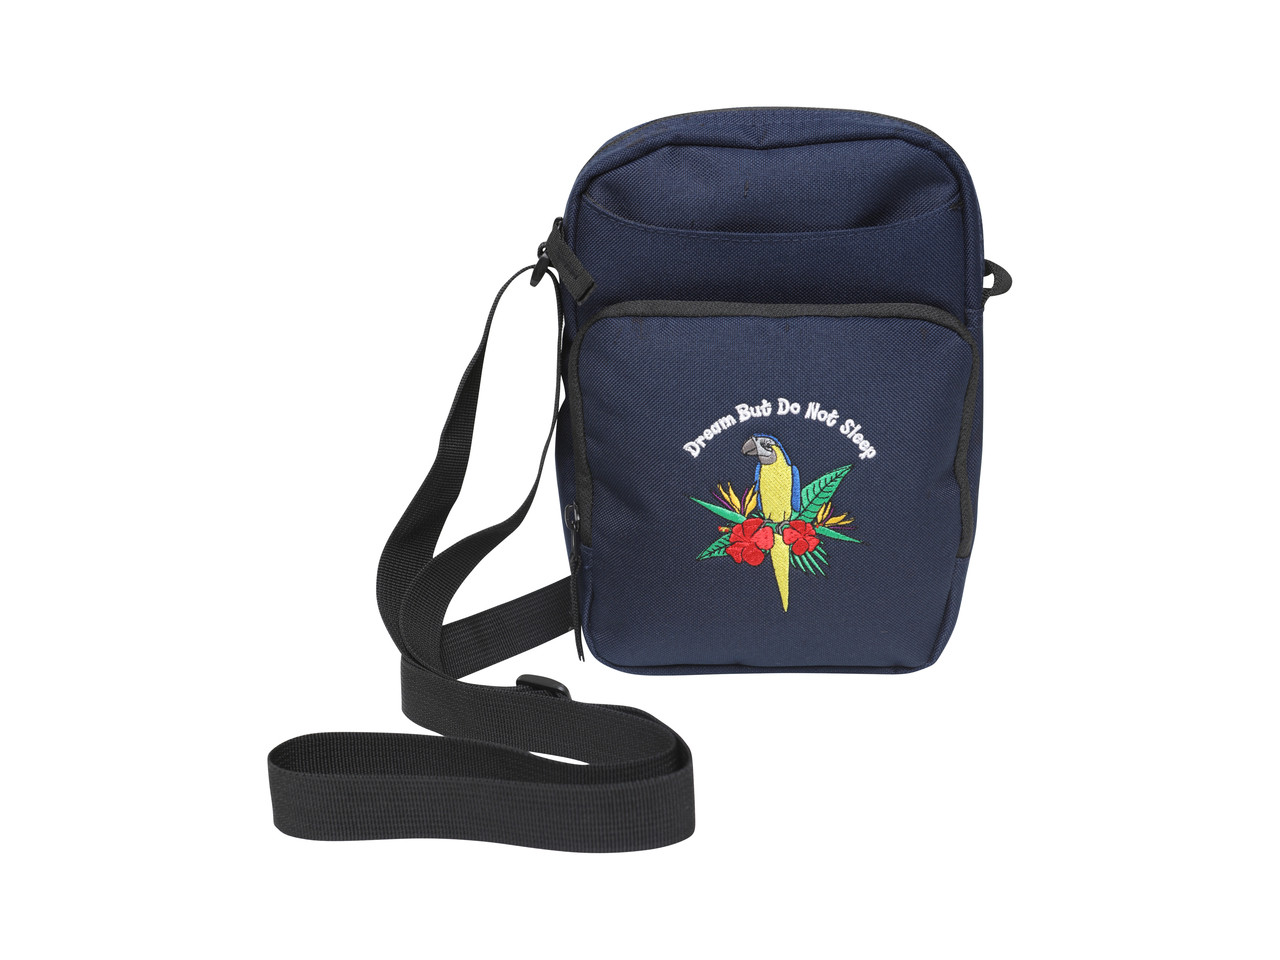 Navy Blue Cross Body Bag With Paradise Island Parrot Embroidery